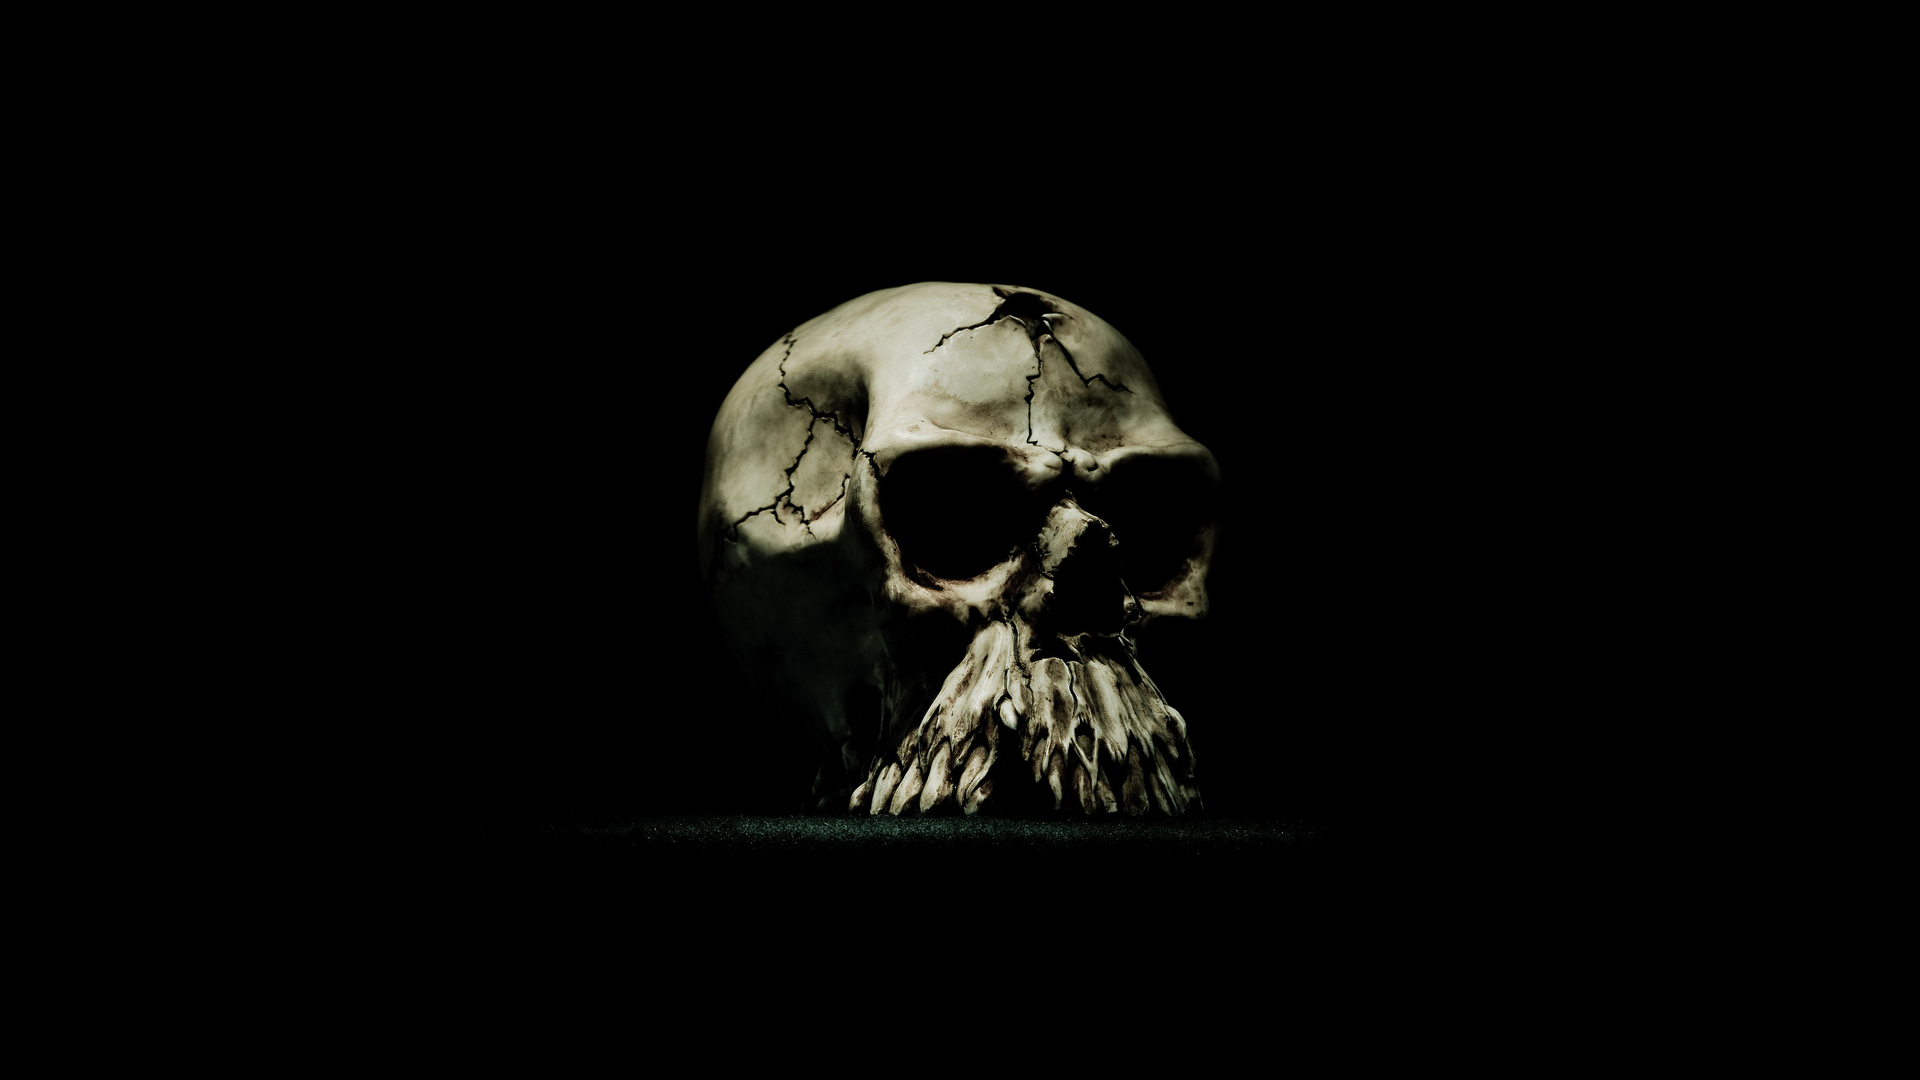 skull wallpapers scary freewallpapers wallpaper scaryskull 1920x1080